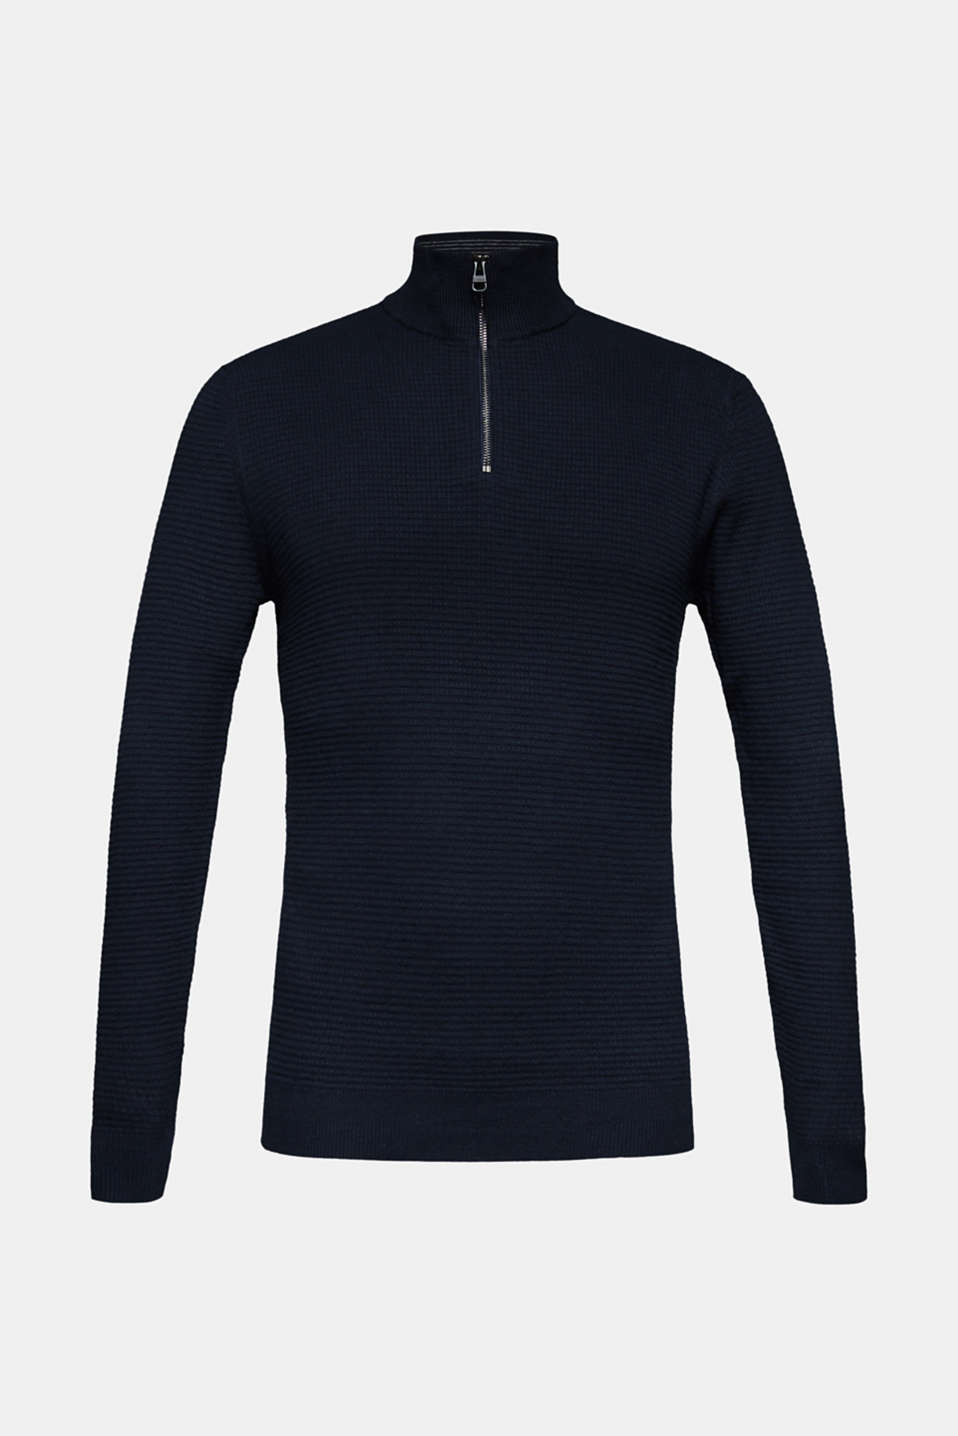 With cashmere: Textured knit jumper, NAVY, detail image number 7